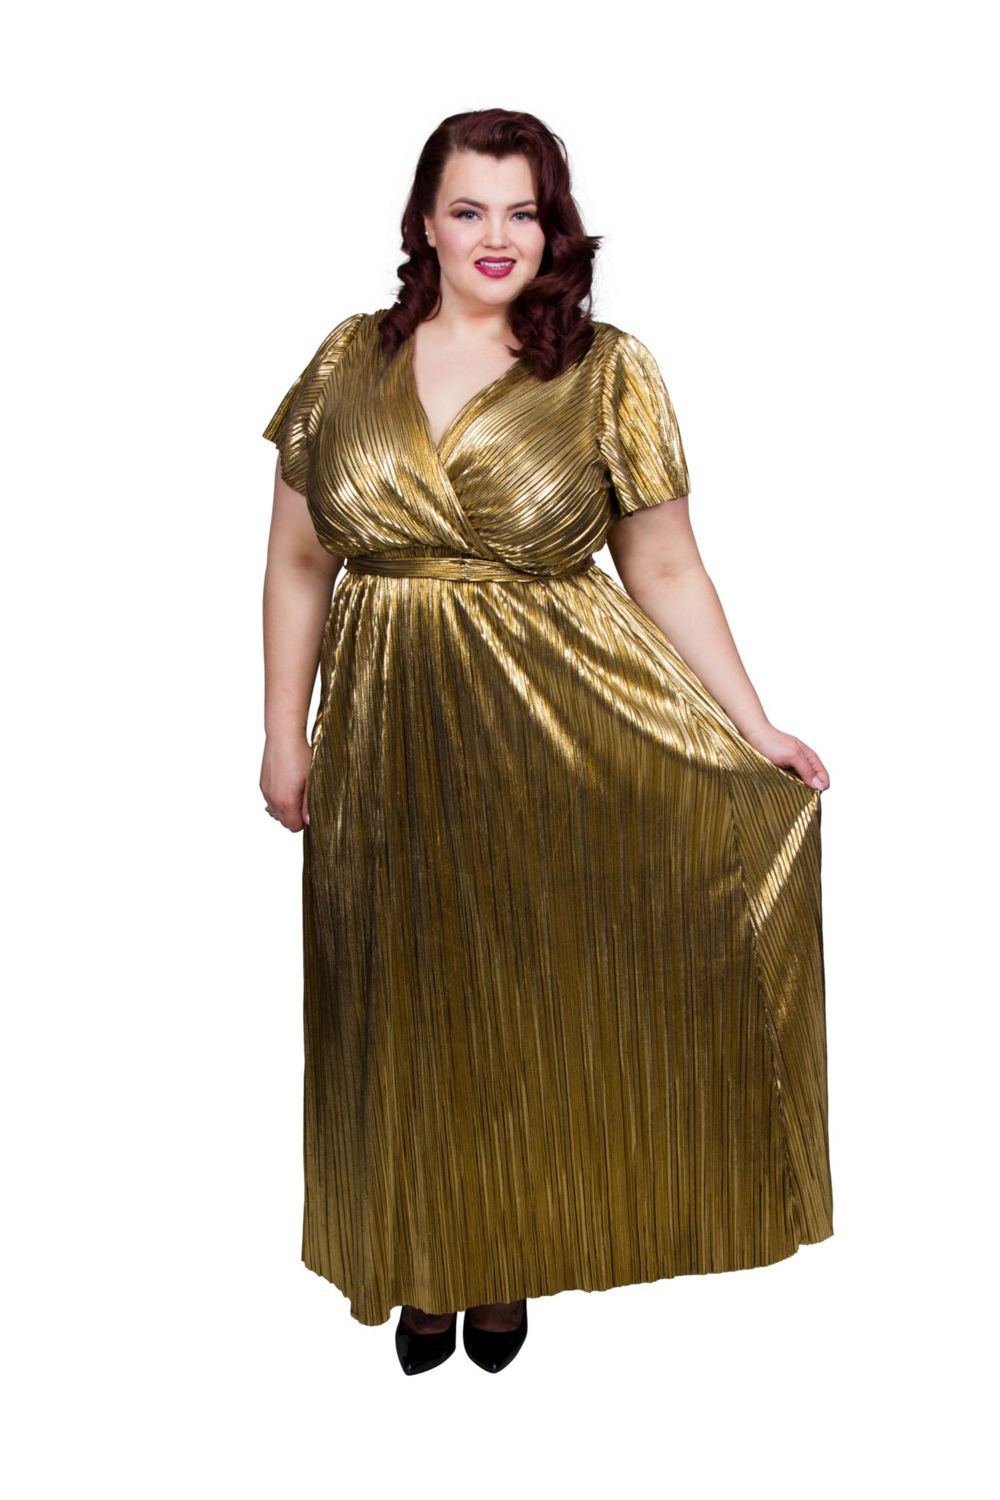 Plus Size Party Dresses - 29 Curvy Girl Party Dresses That Will Make ...